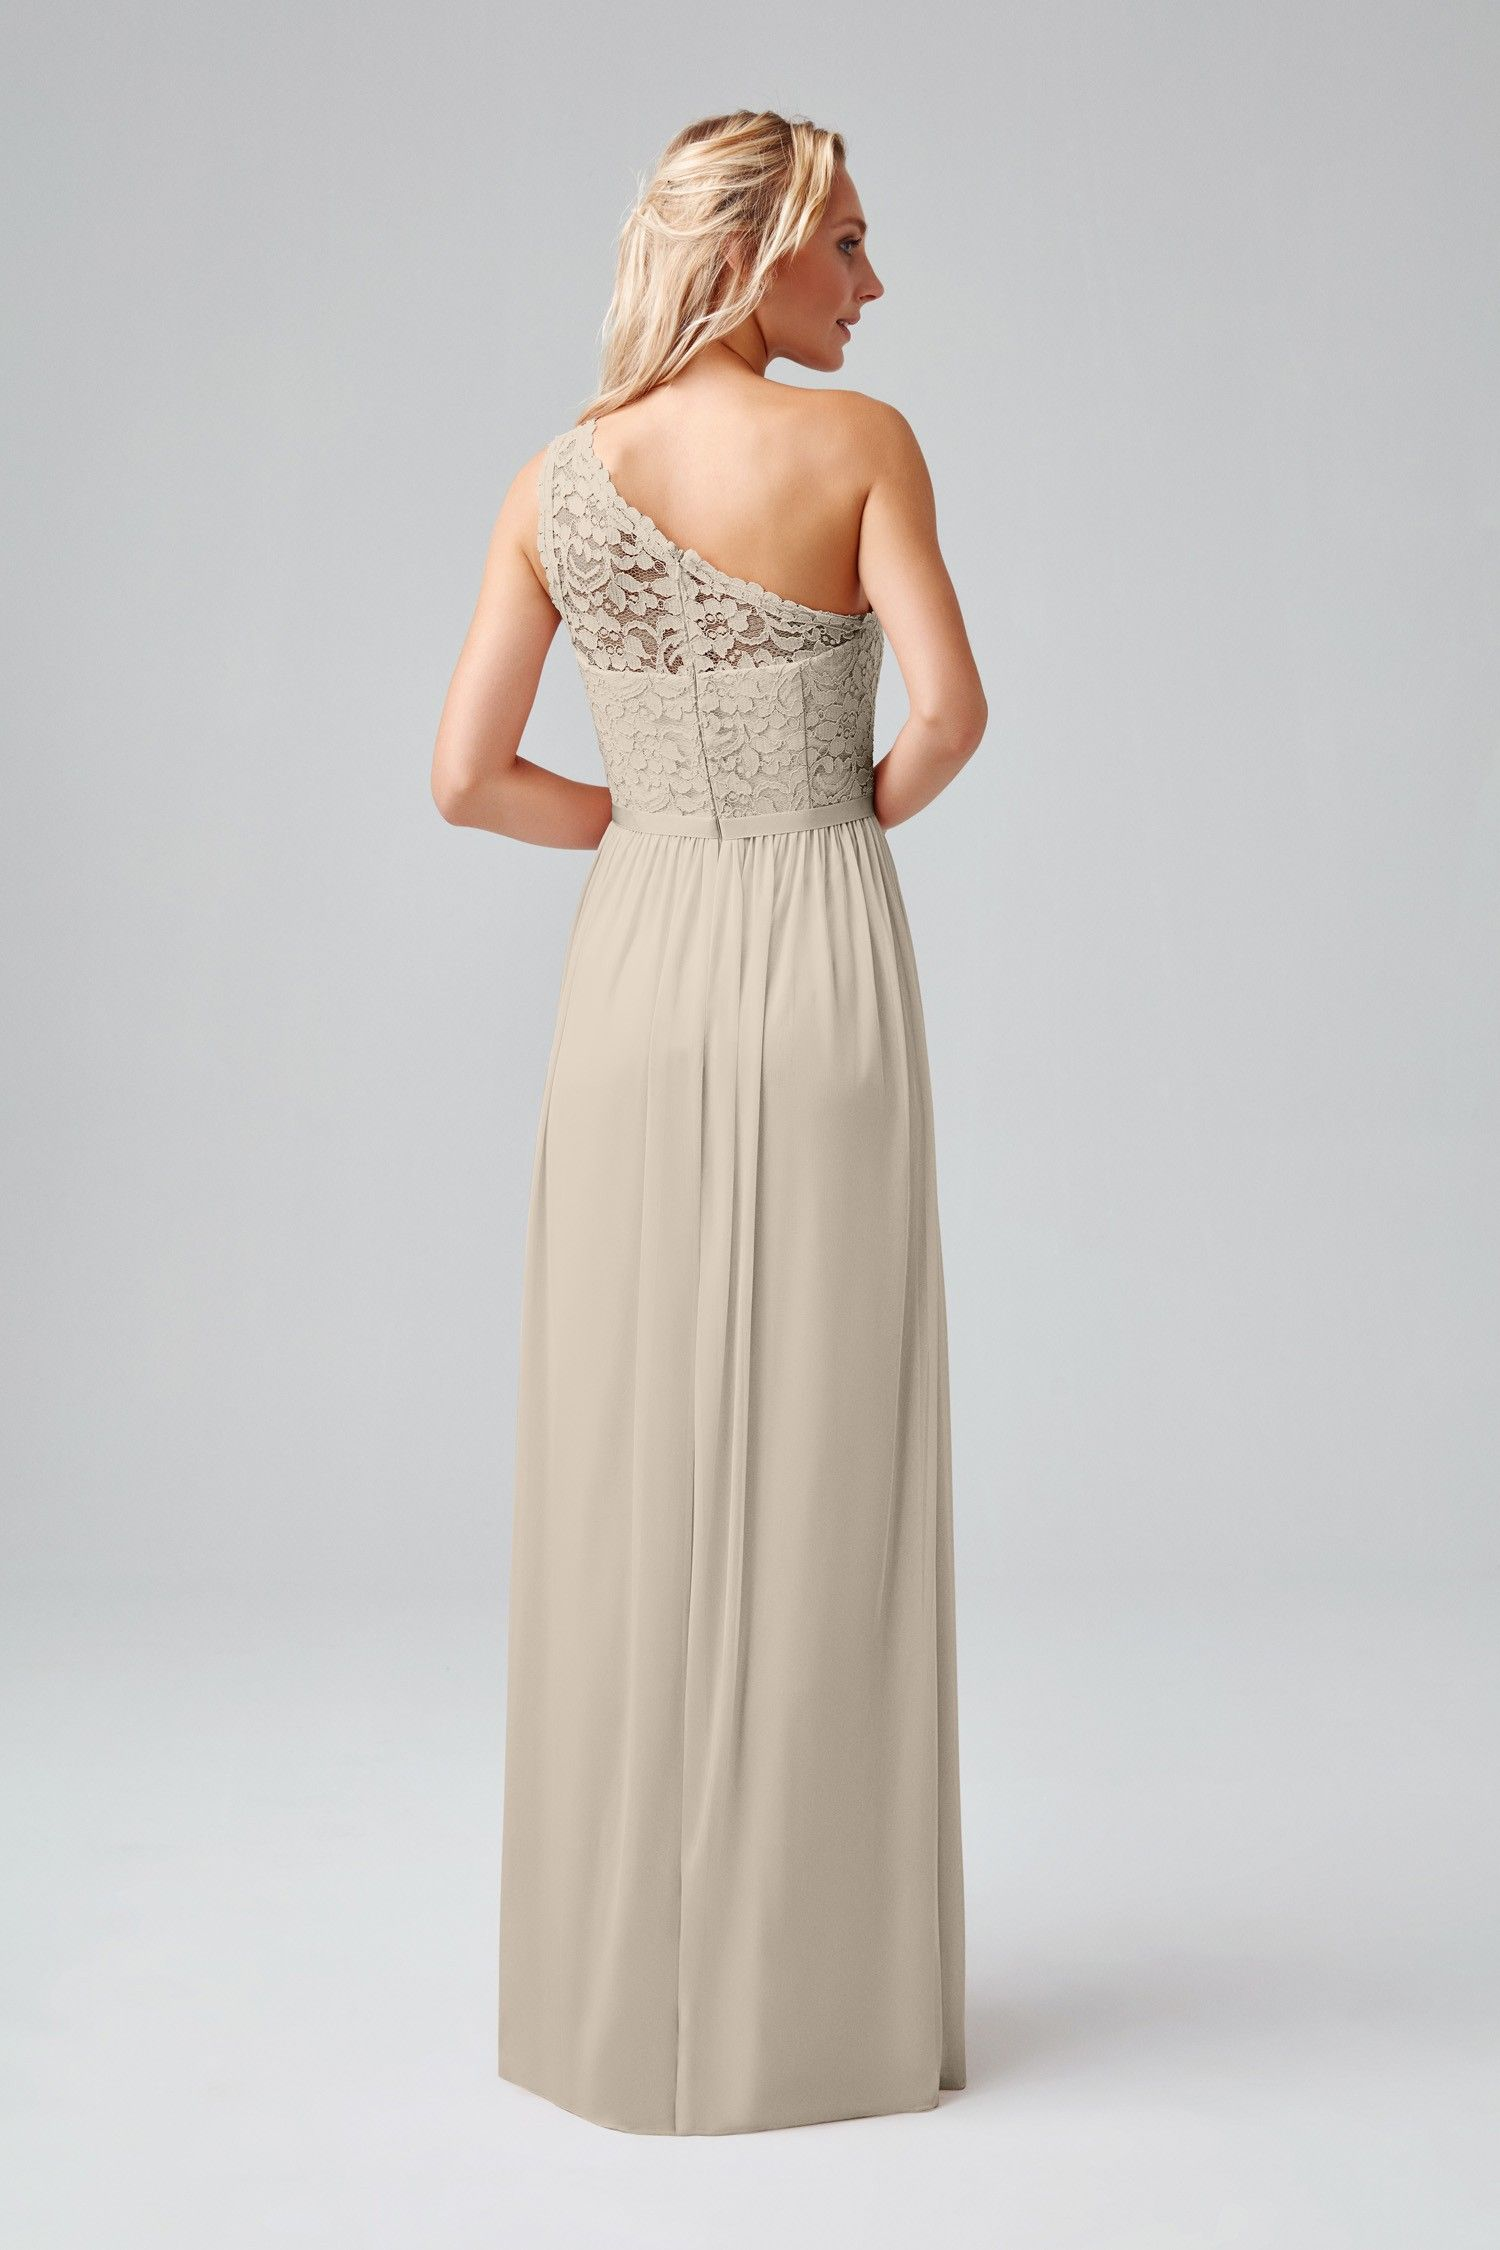 Long One Shoulder Lace Bridesmaid Dress F17063 Our